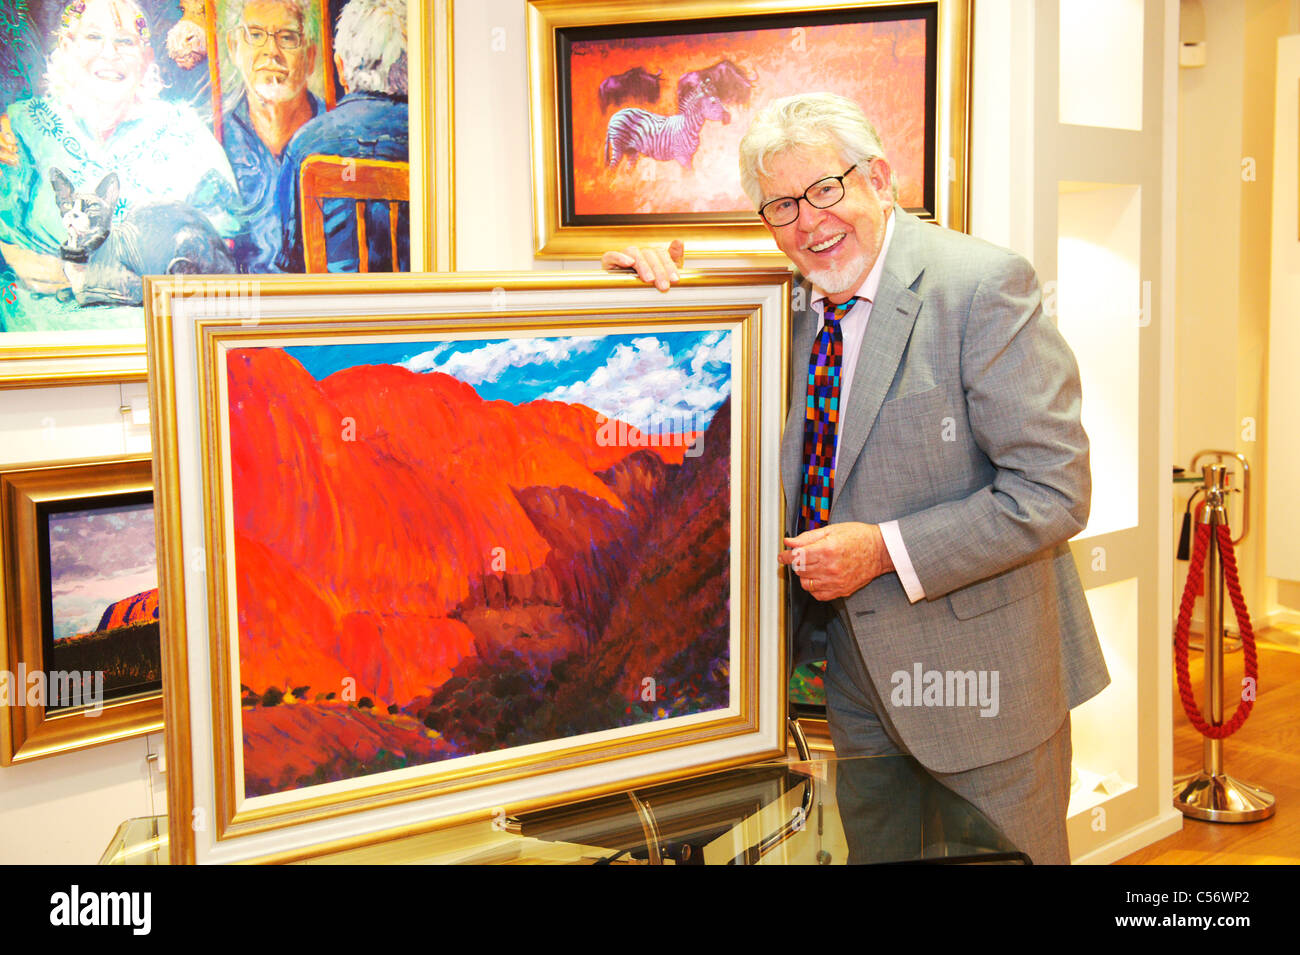 Artist and TV Presenter Rolf Harris holds a piece of his original art while smiling at camera Stock Photo